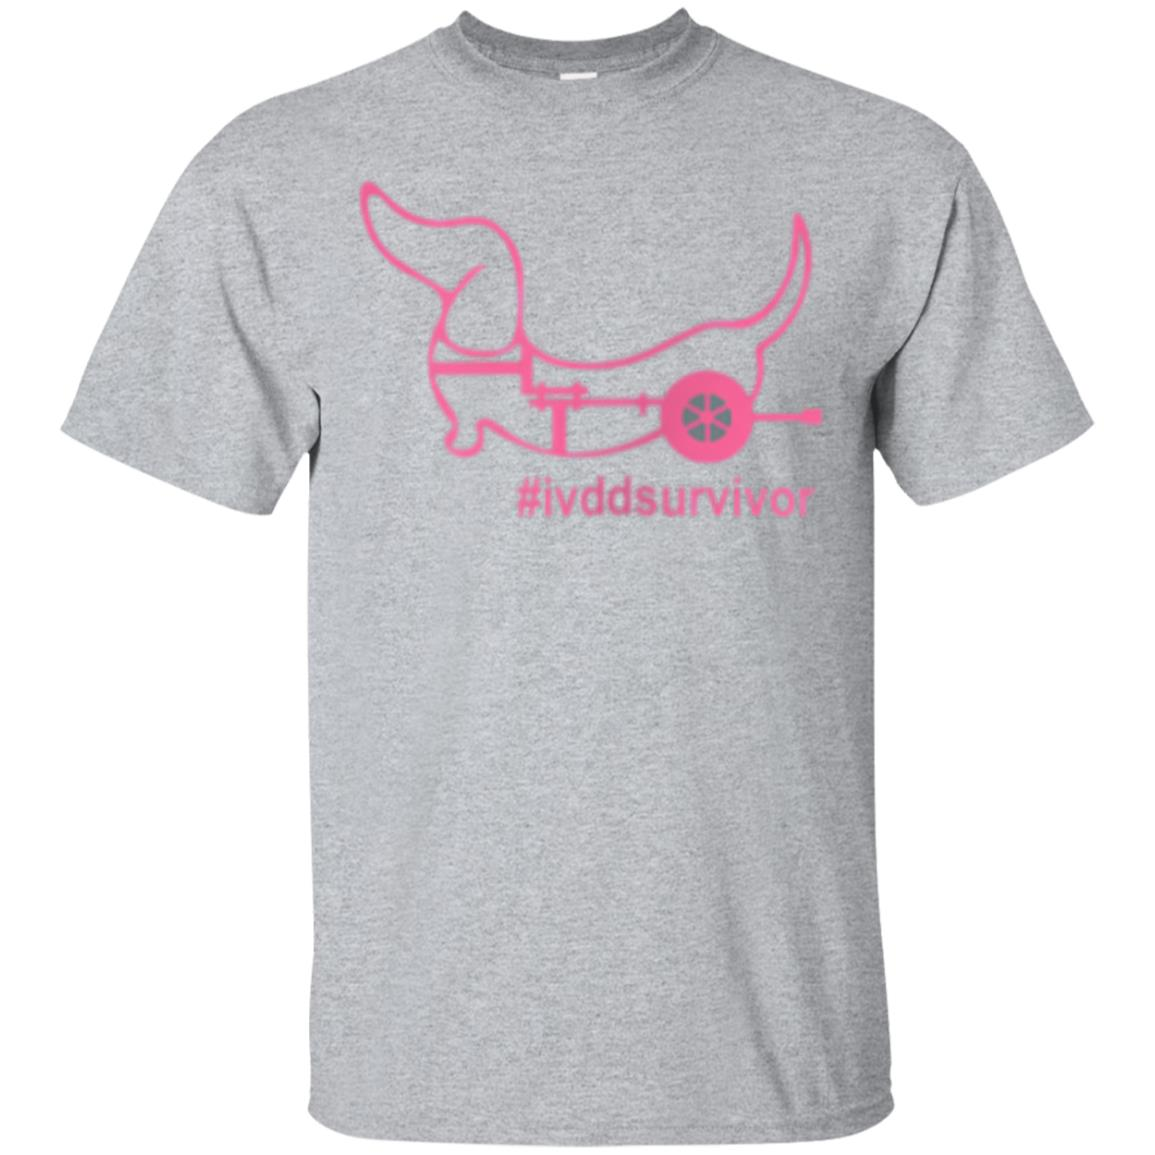 Dachshund in a Wheelchair IVDD Survivor T Shirt Pink 99promocode